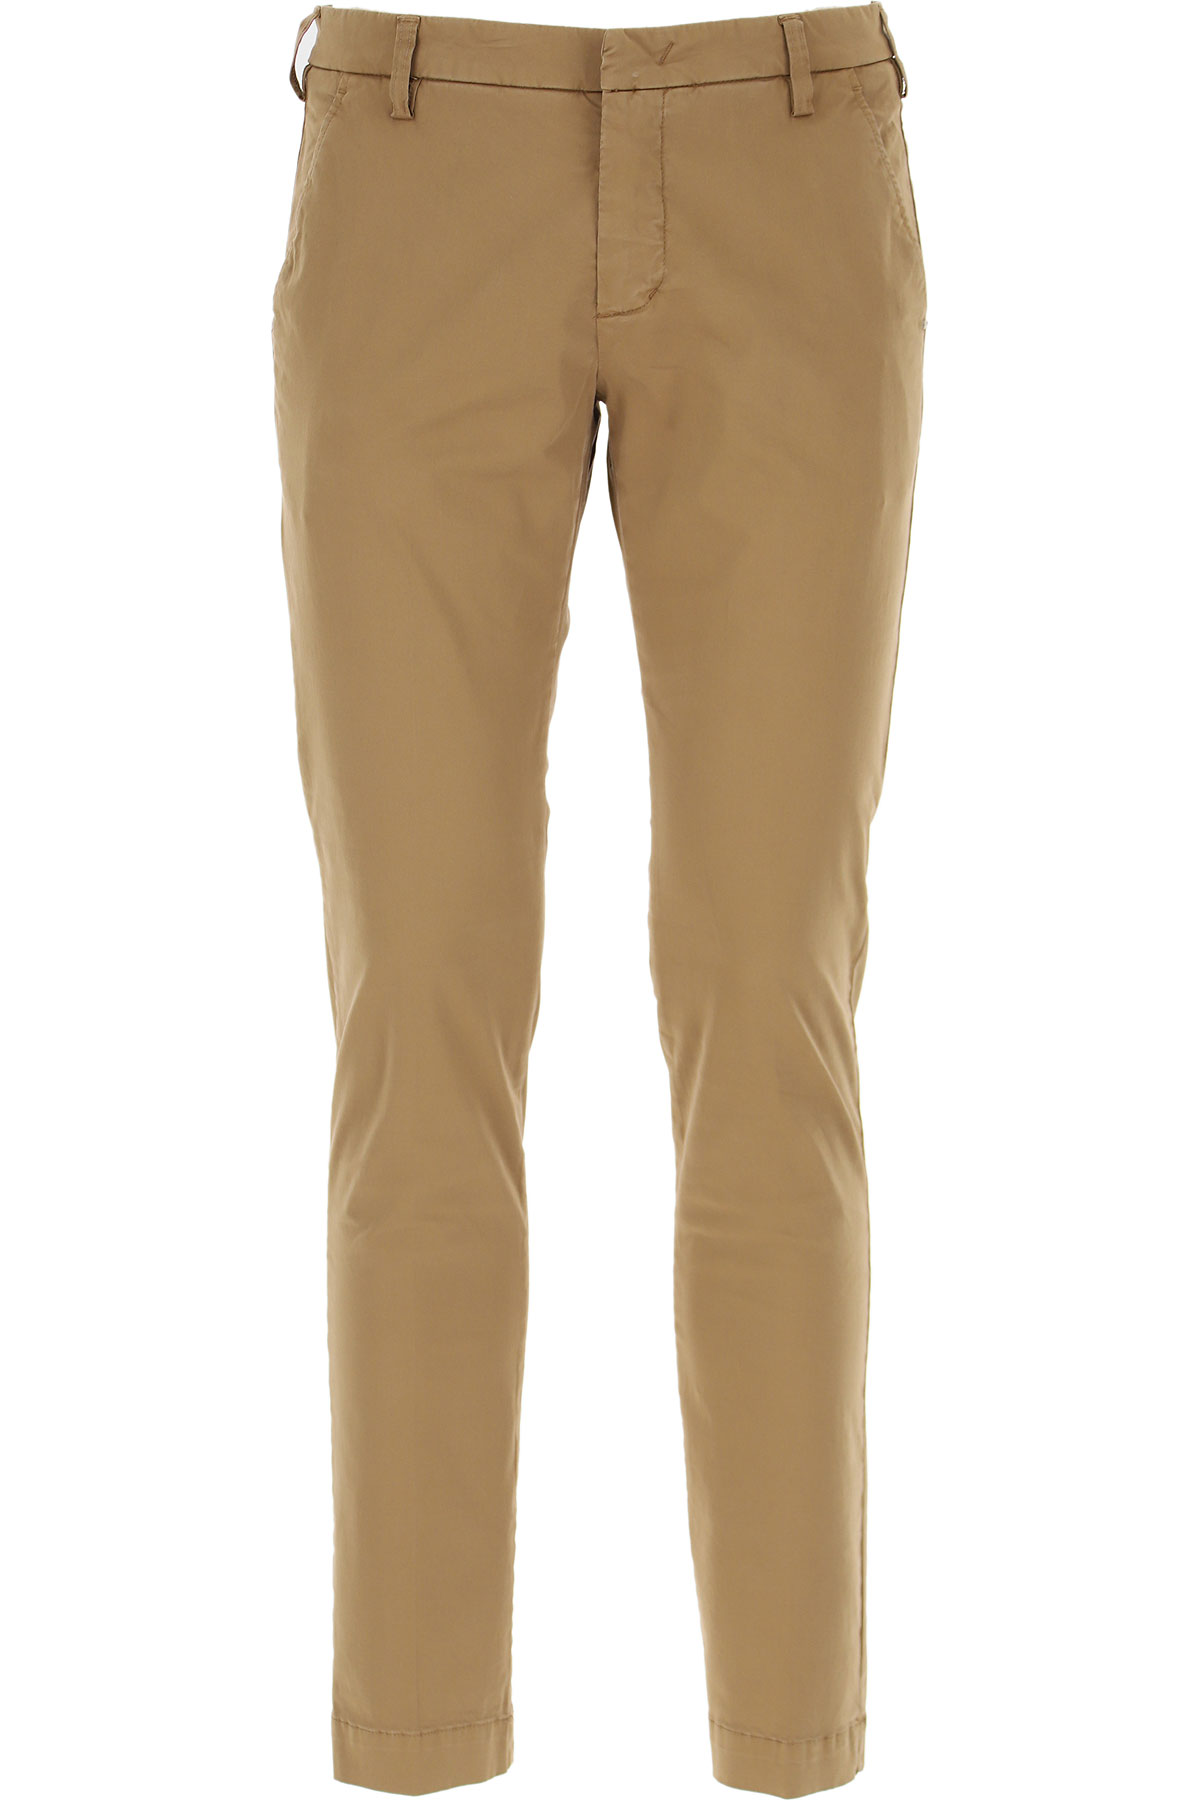 Entre Amis Pants for Men On Sale, Brown, Cotton, 2019, 33 34 36 38